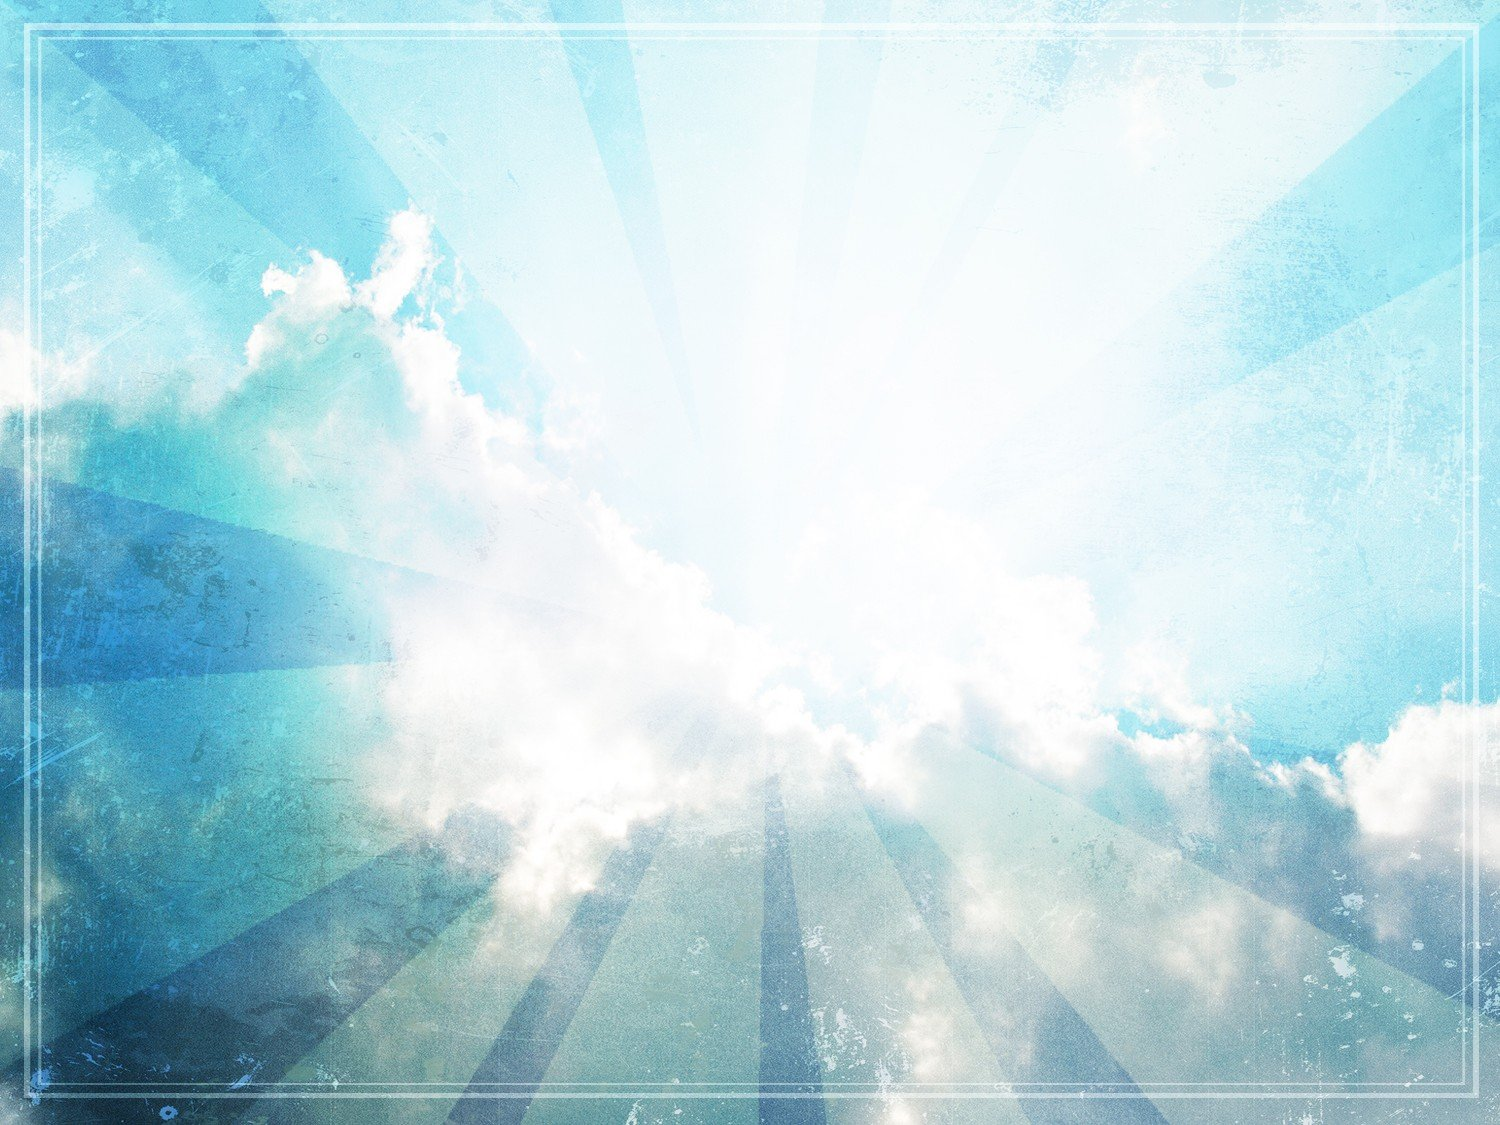 Church Background Images WallpaperSafari – Free Word Background Templates